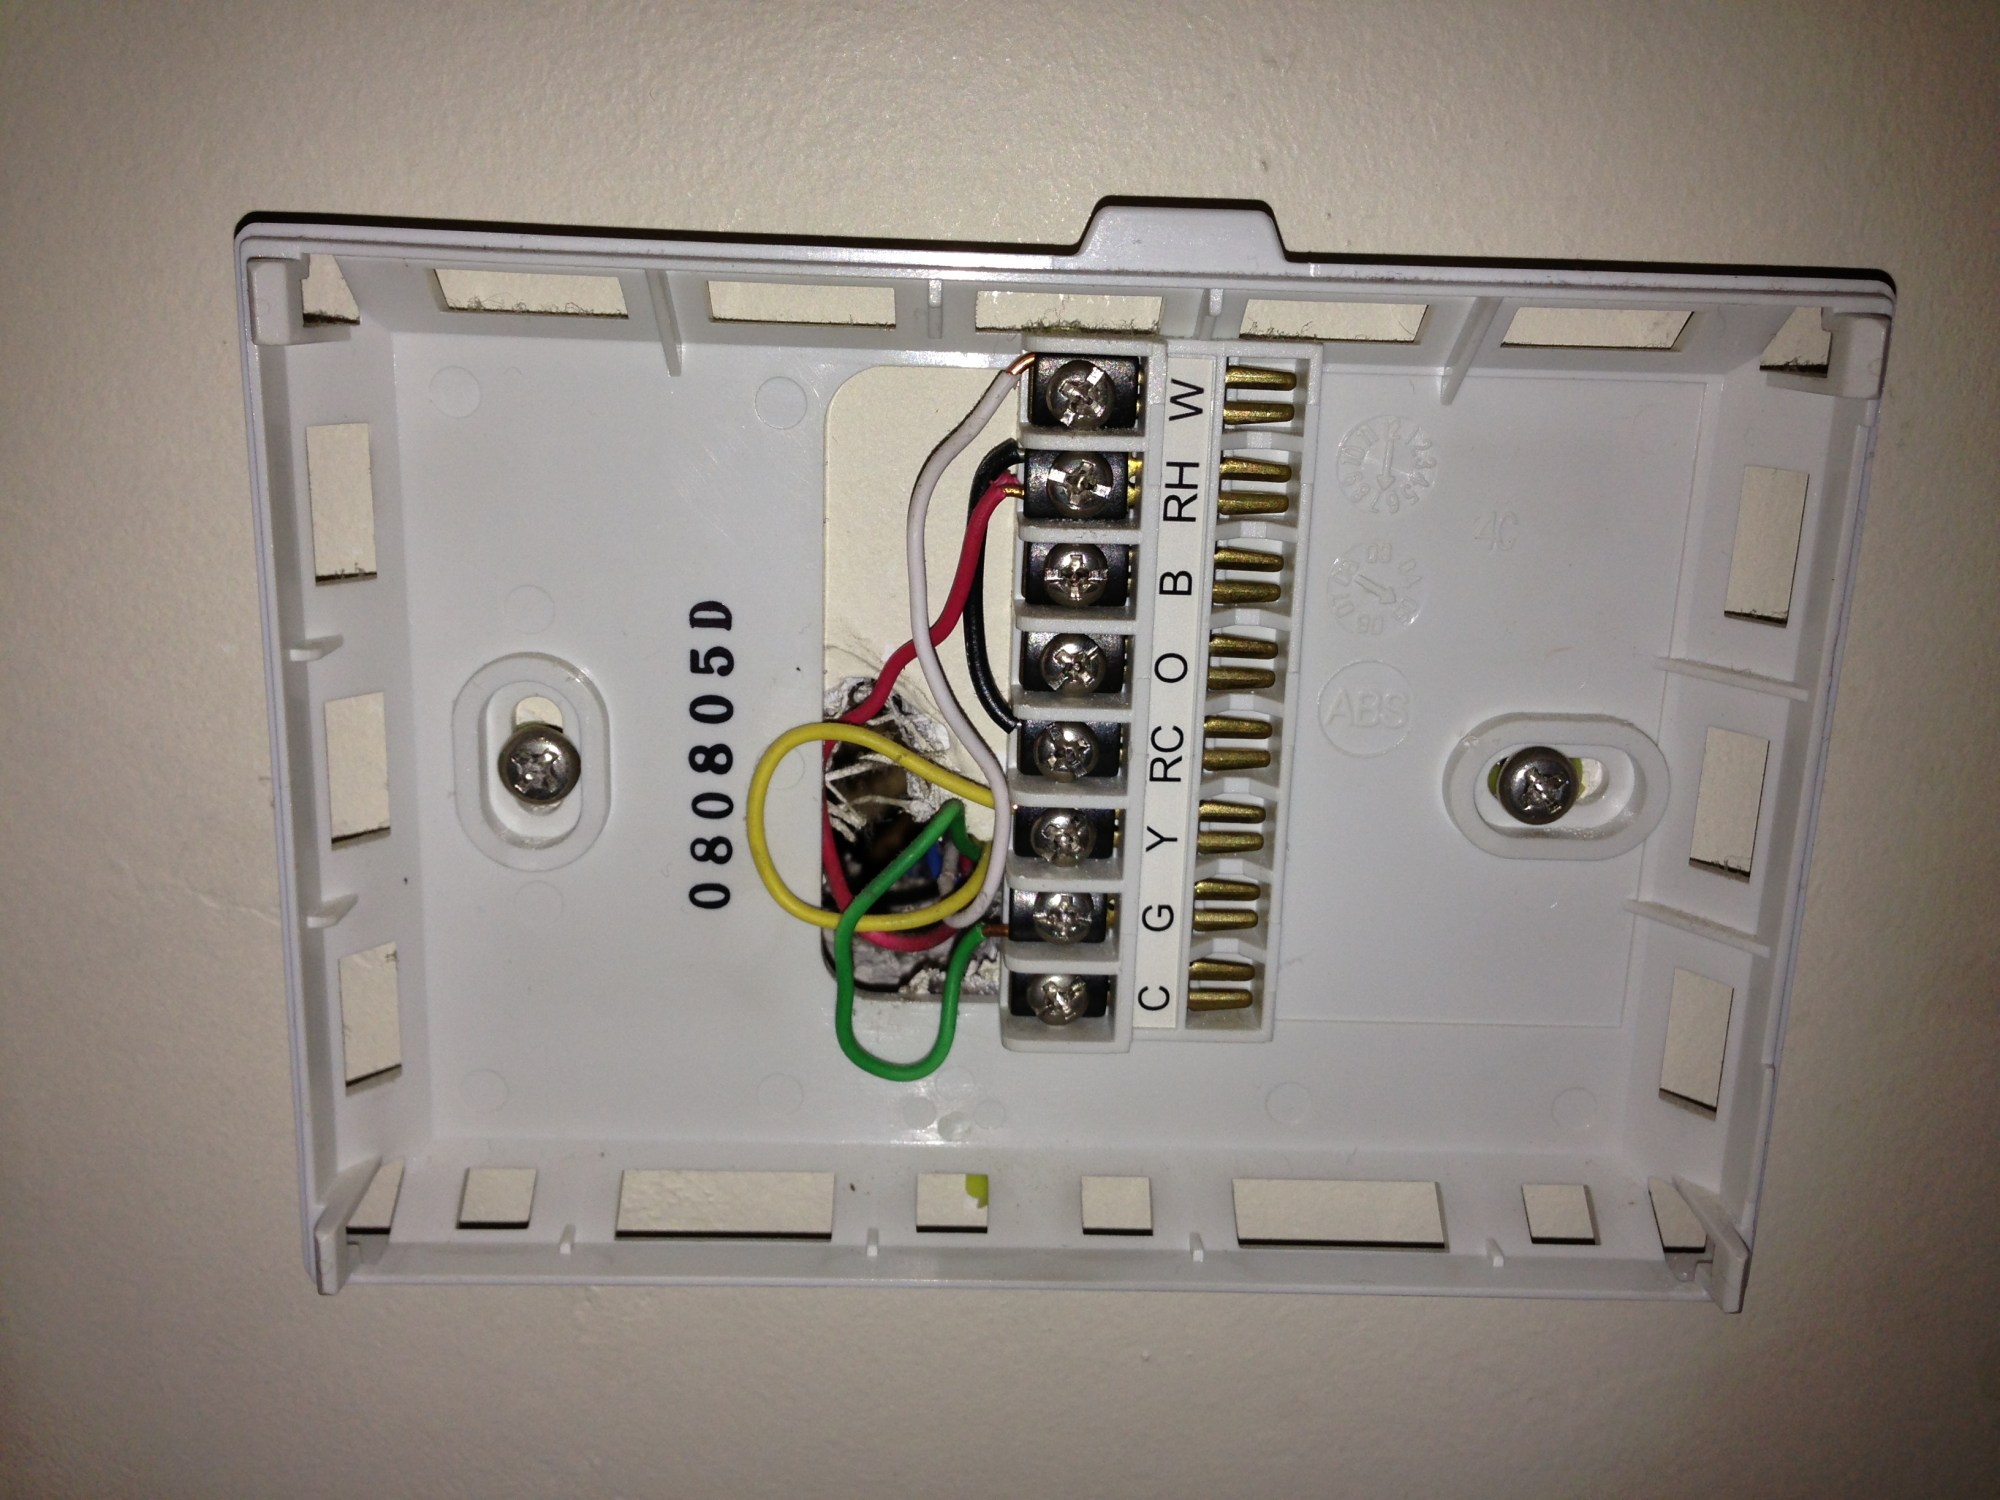 hight resolution of luxpro thermostat wiring diagram braeburn thermostat wiring diagram u2022 mifinder co 208 line voltage thermostat wiring diagram honeywell thermostat wiring